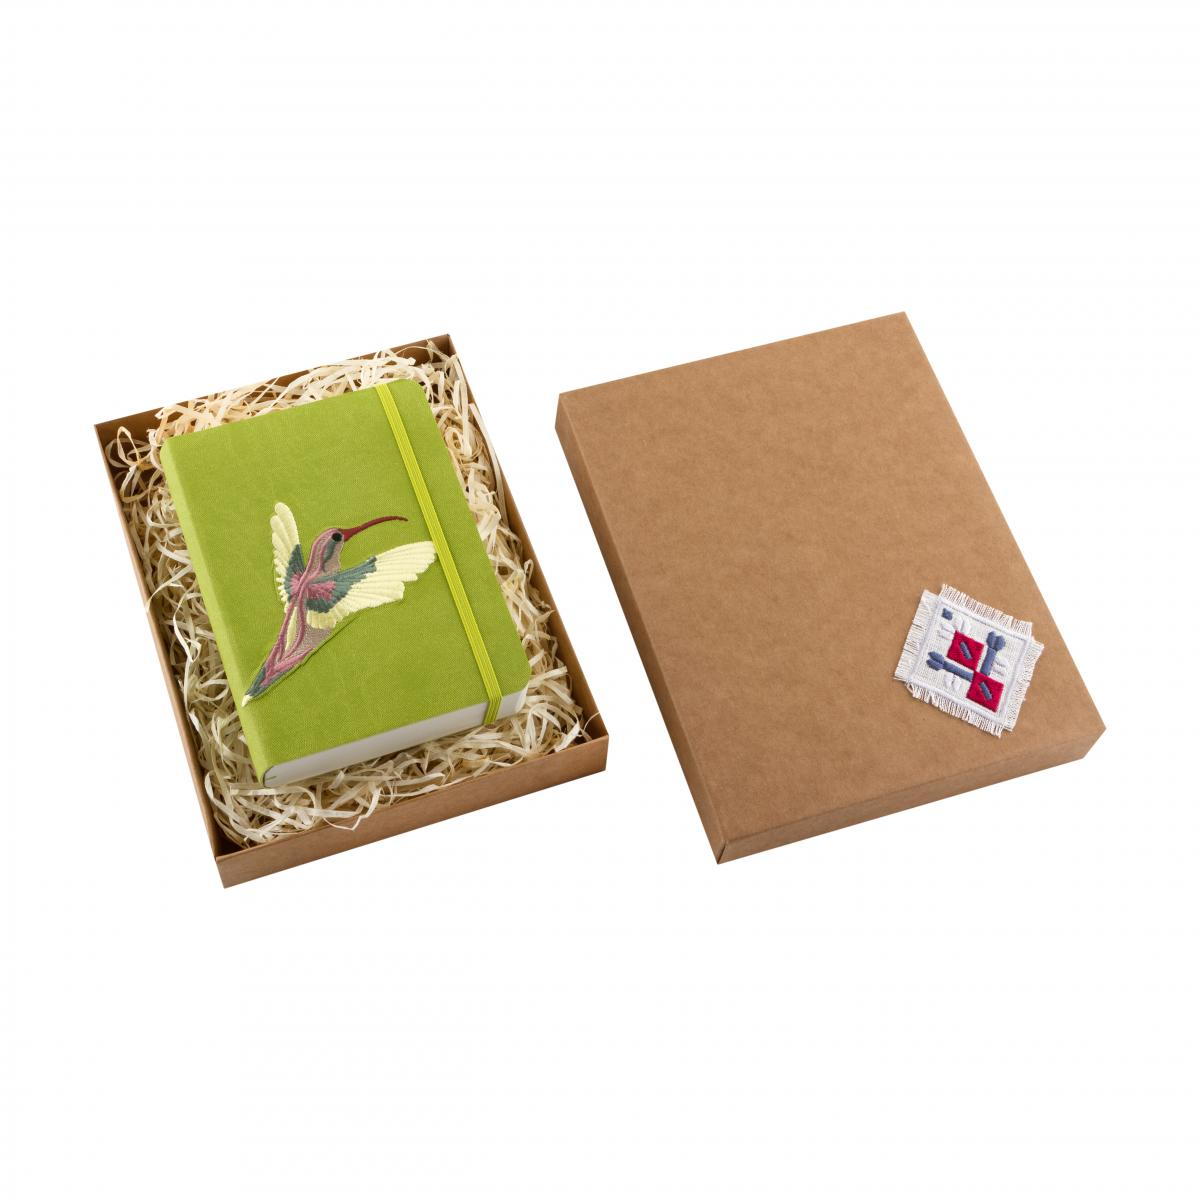 "Eco-leather notebook with embroidery ""Stork"", green. Photo №3. 